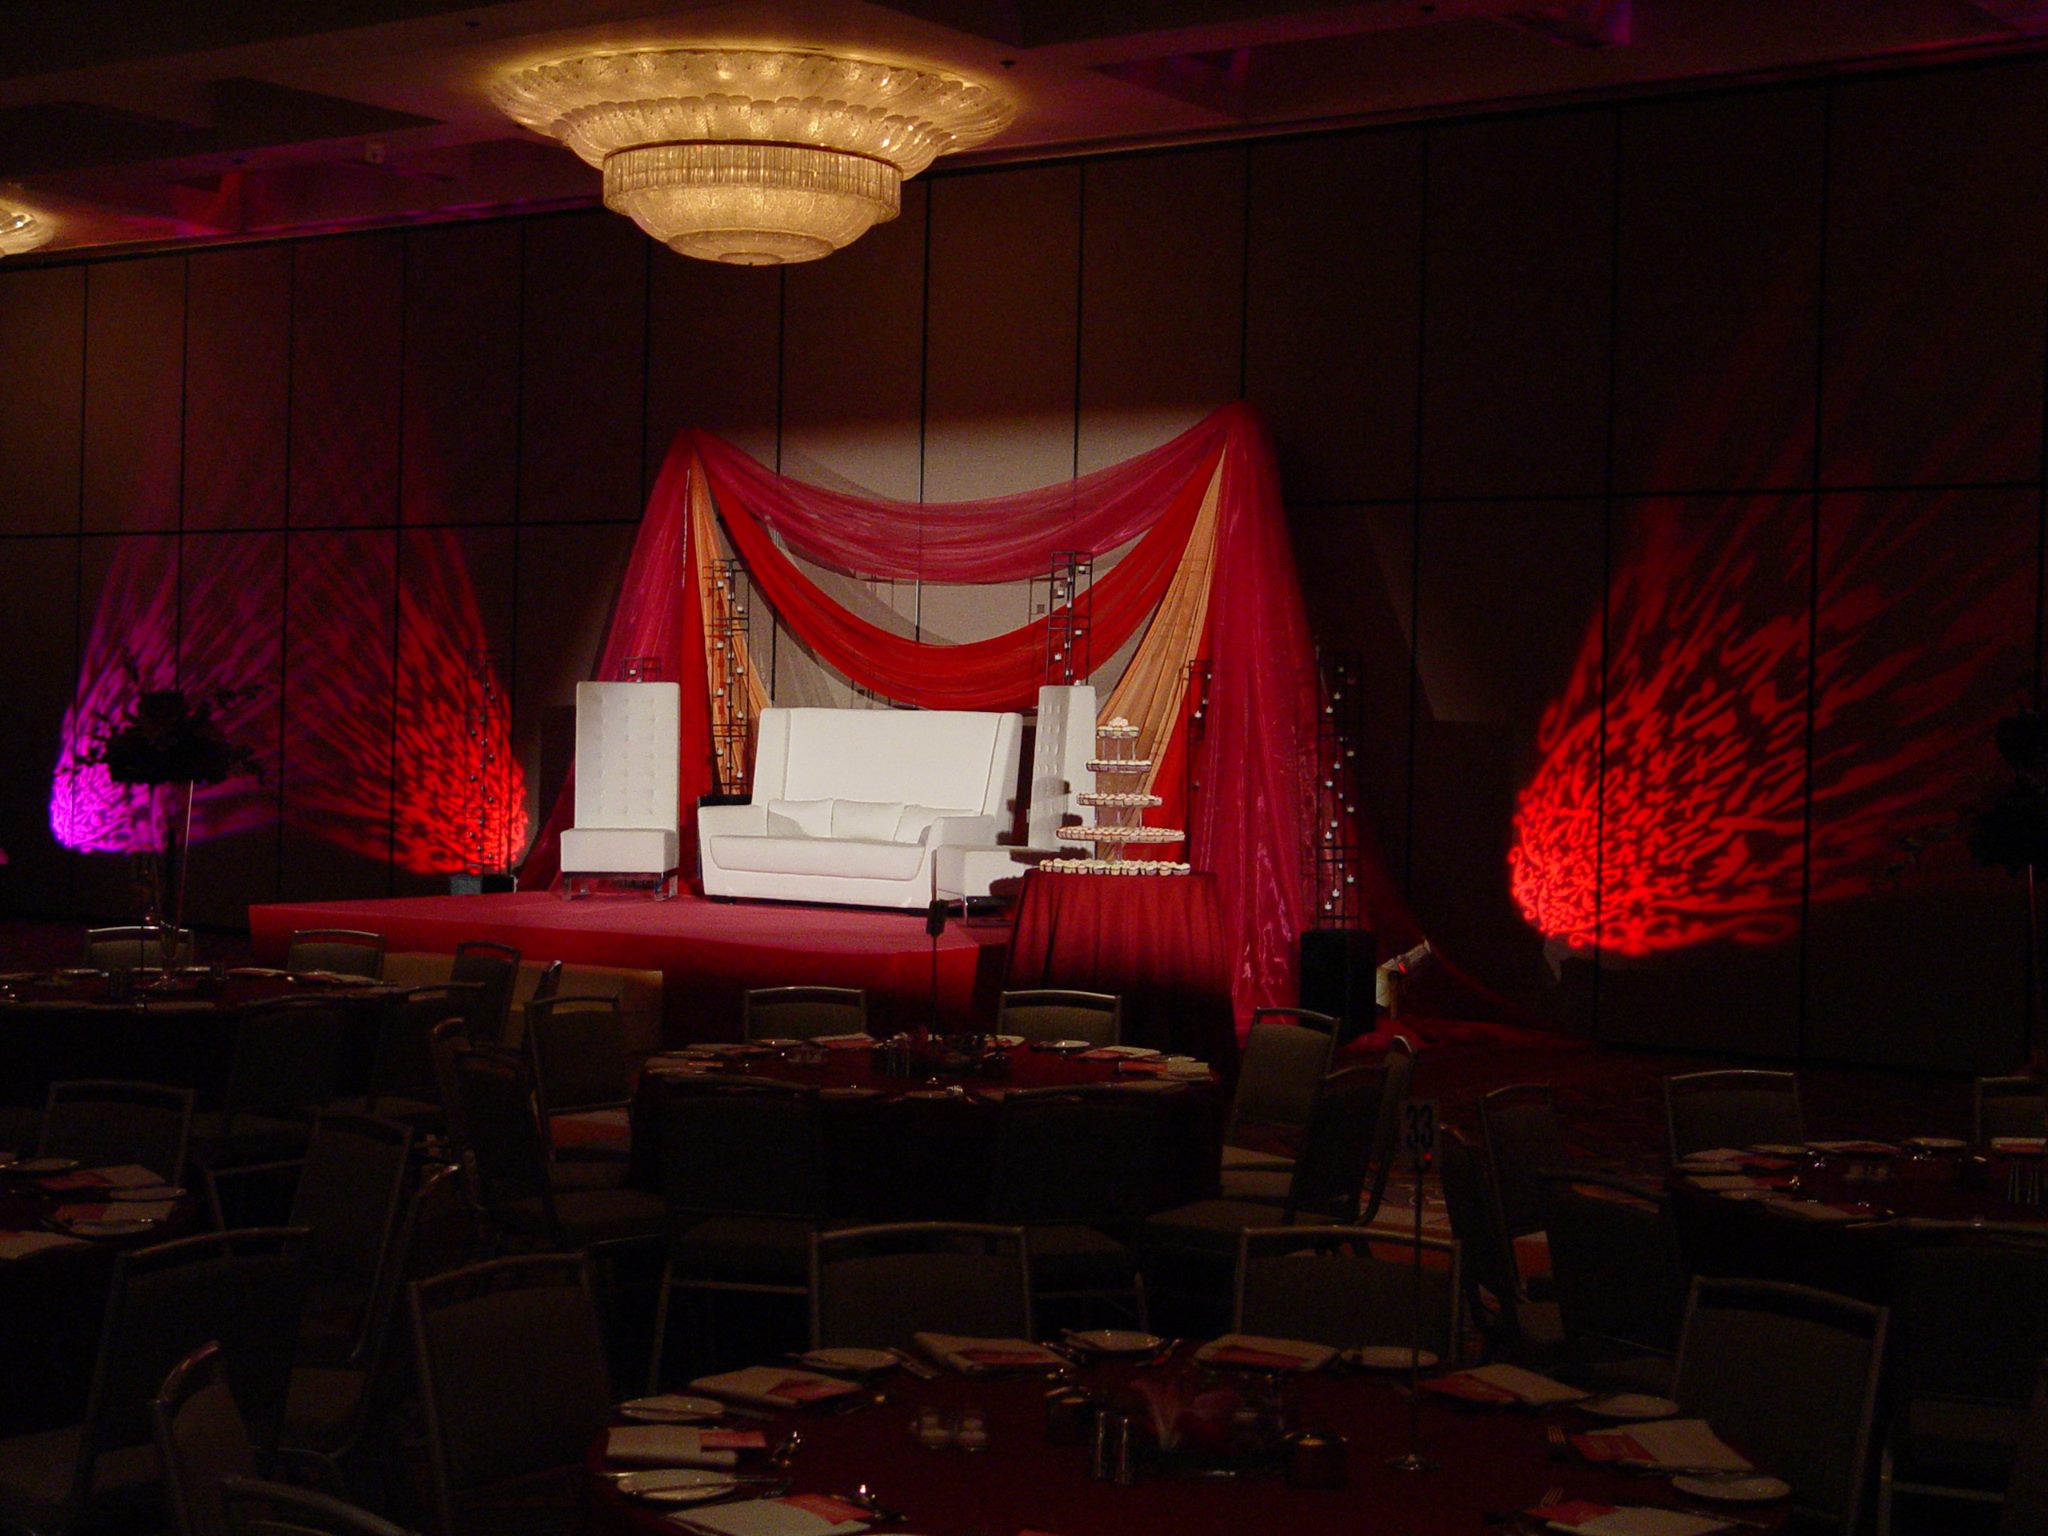 Innovative Lighting and Design Kansas City Event Lighting Weddings and Events 8.